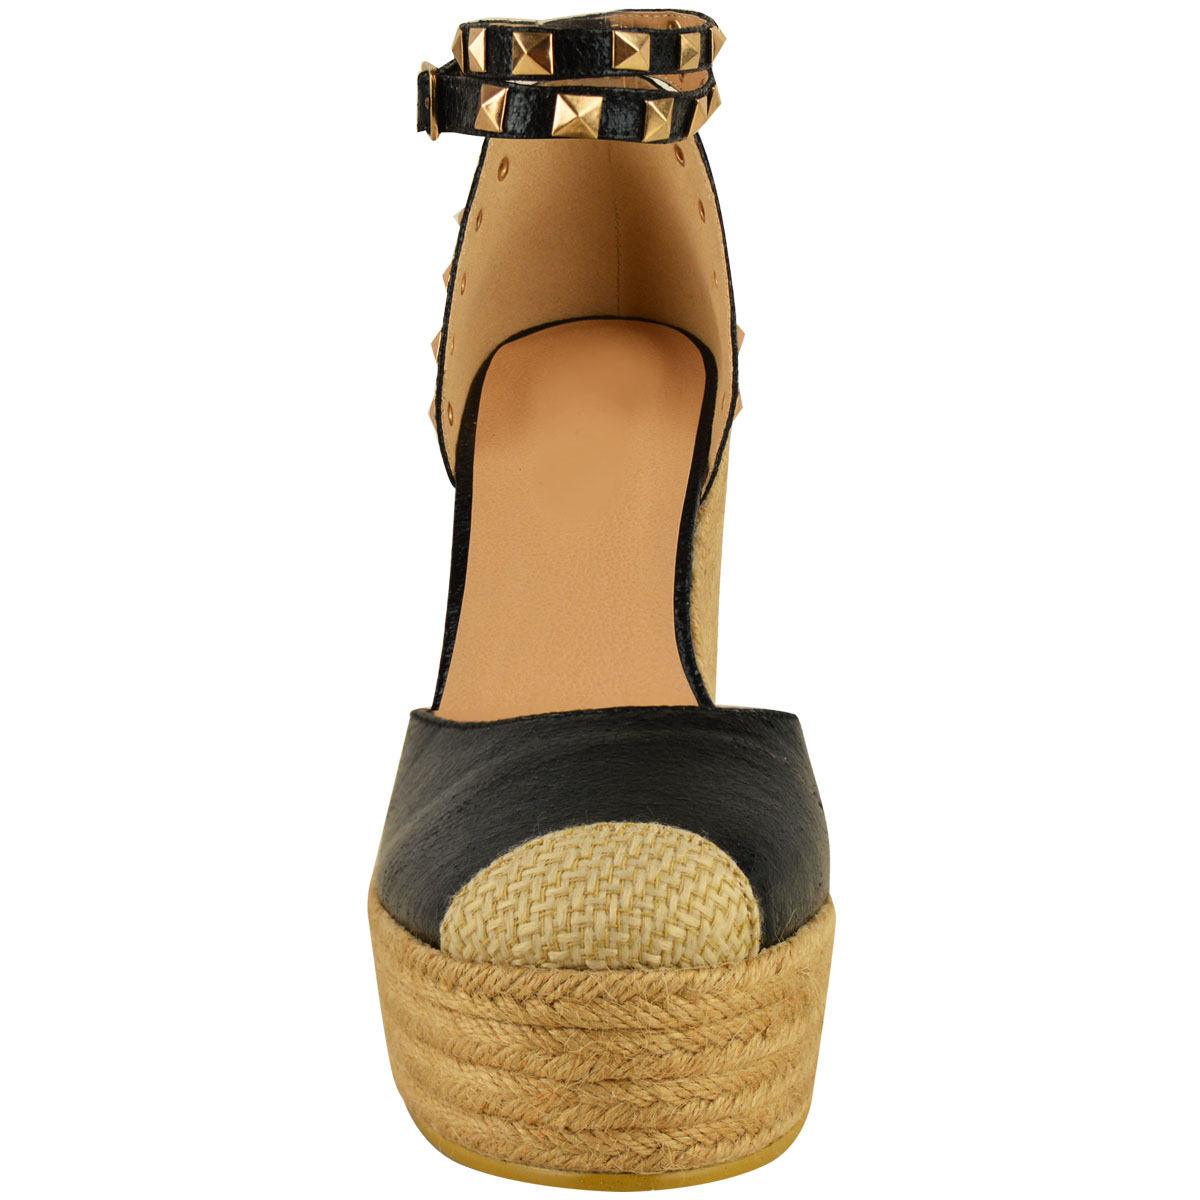 New-Womens-Stud-Espadrille-Wedge-Summer-Sandal-Ladies-Rose-Gold-Party-Shoes-Size thumbnail 21